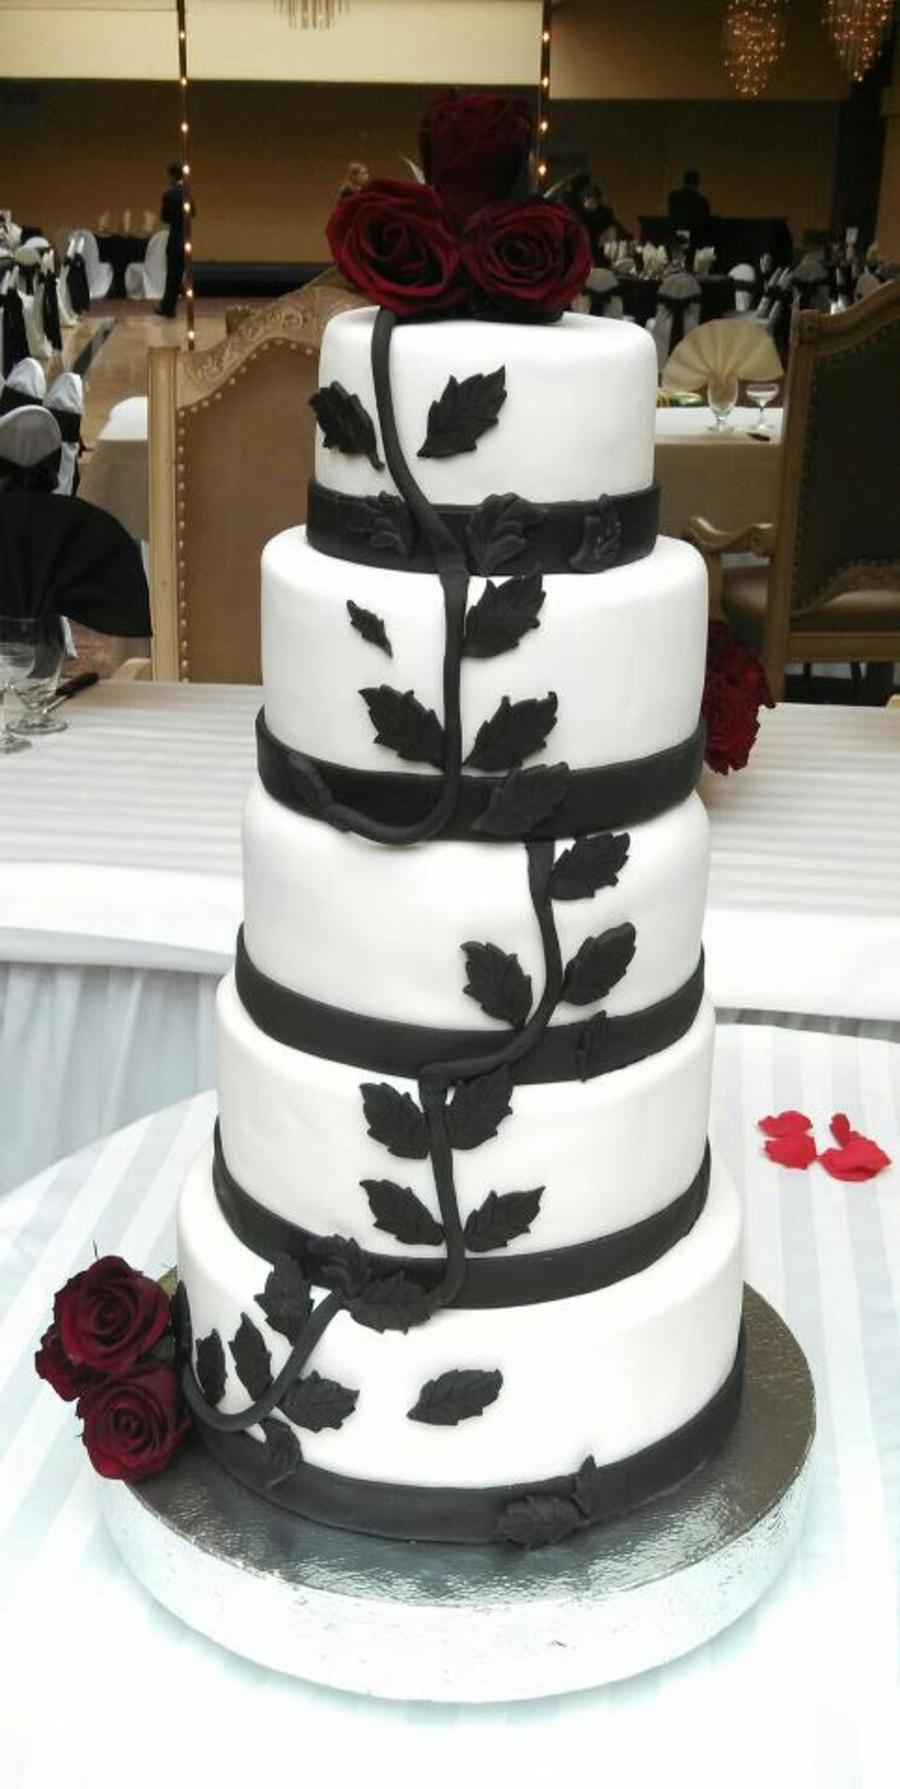 Black & White Wedding Cake With Black Magic Roses - CakeCentral.com